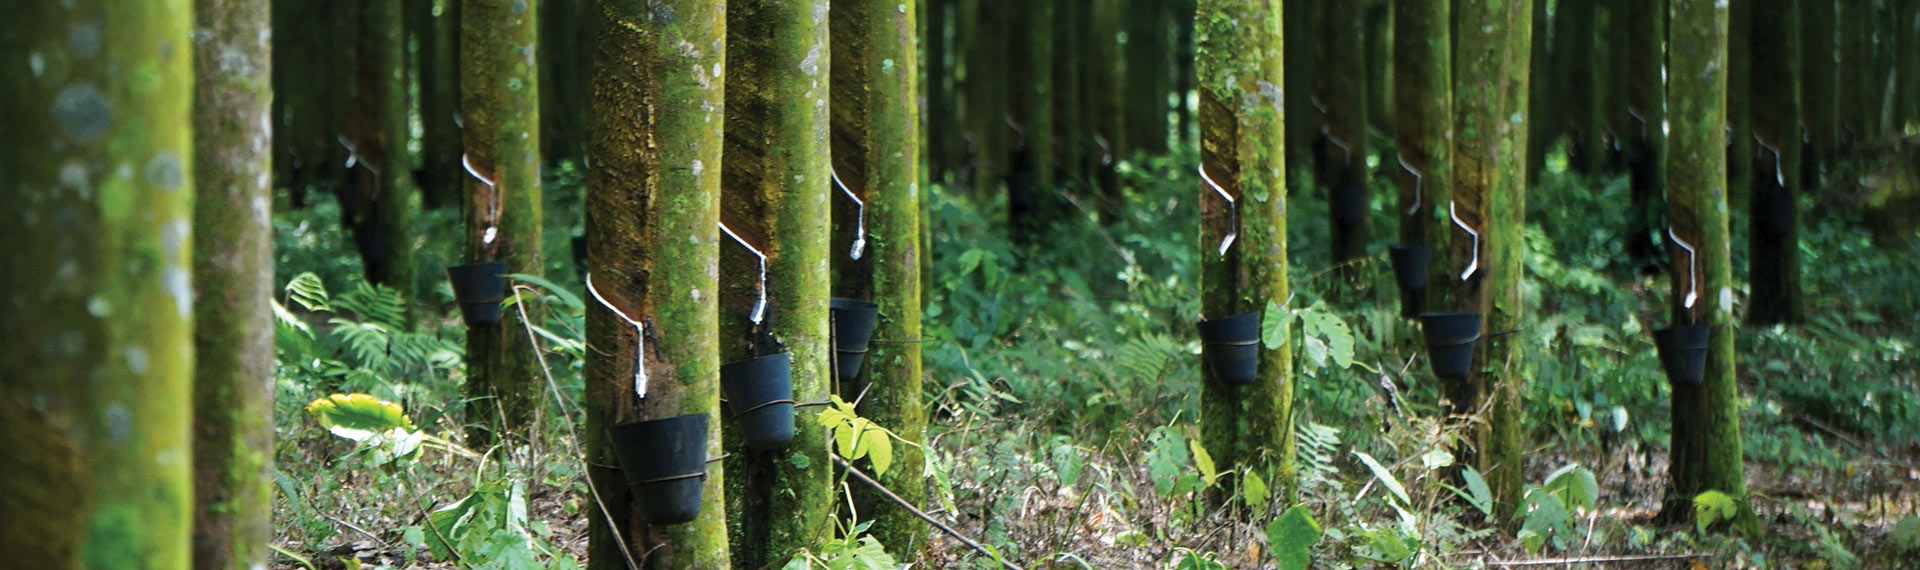 Image of trees collecting natural resources needed for rubber.